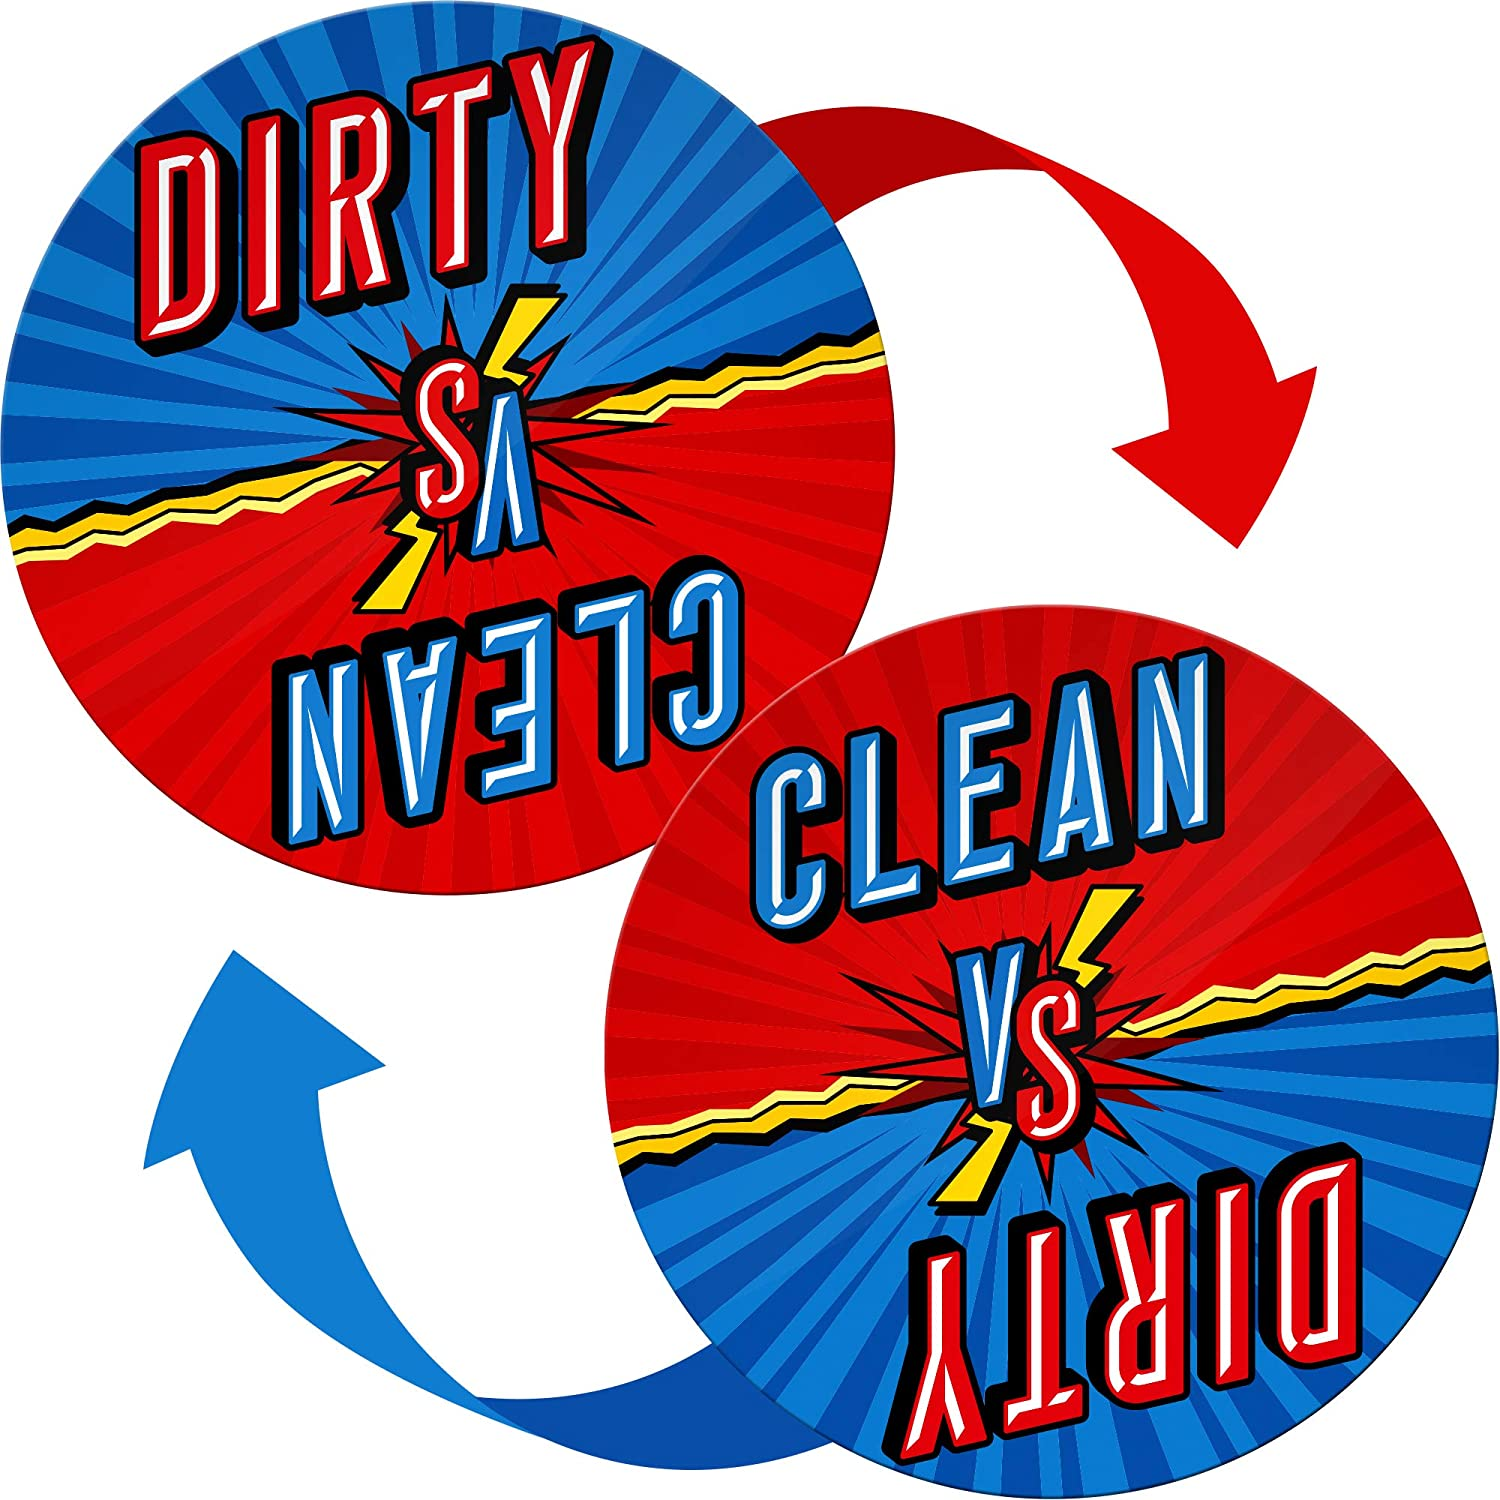 Clean Dirty Dishwasher Magnet Funny Comics Sign - Gifts for Grandma from Grandchildren, Great as Gifts for Mom from Son and Daughter - Housewarming Gifts New Home - Dishwasher Magnet Clean Dirty Funny